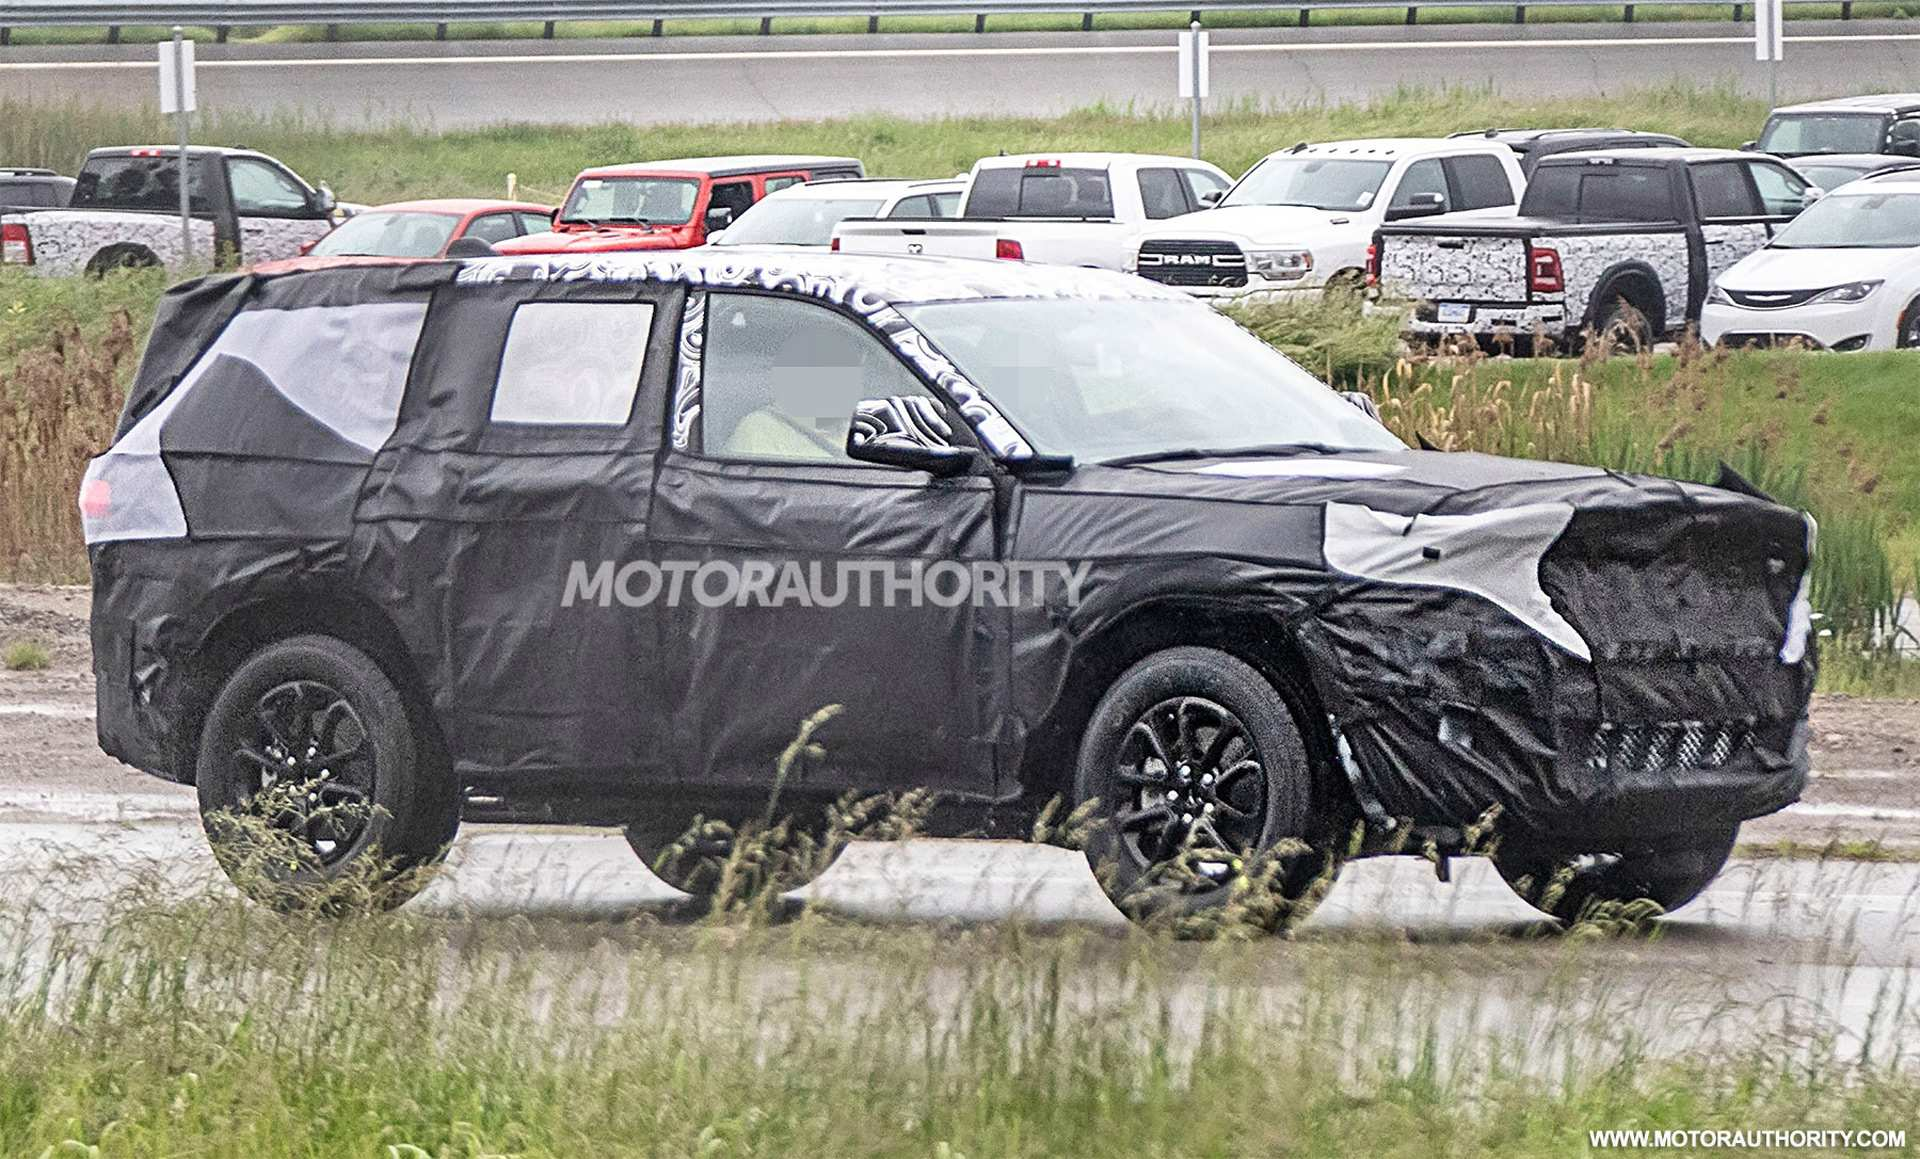 56 All New Jeep Grand Cherokee 2020 Spy Shots Review by Jeep Grand Cherokee 2020 Spy Shots